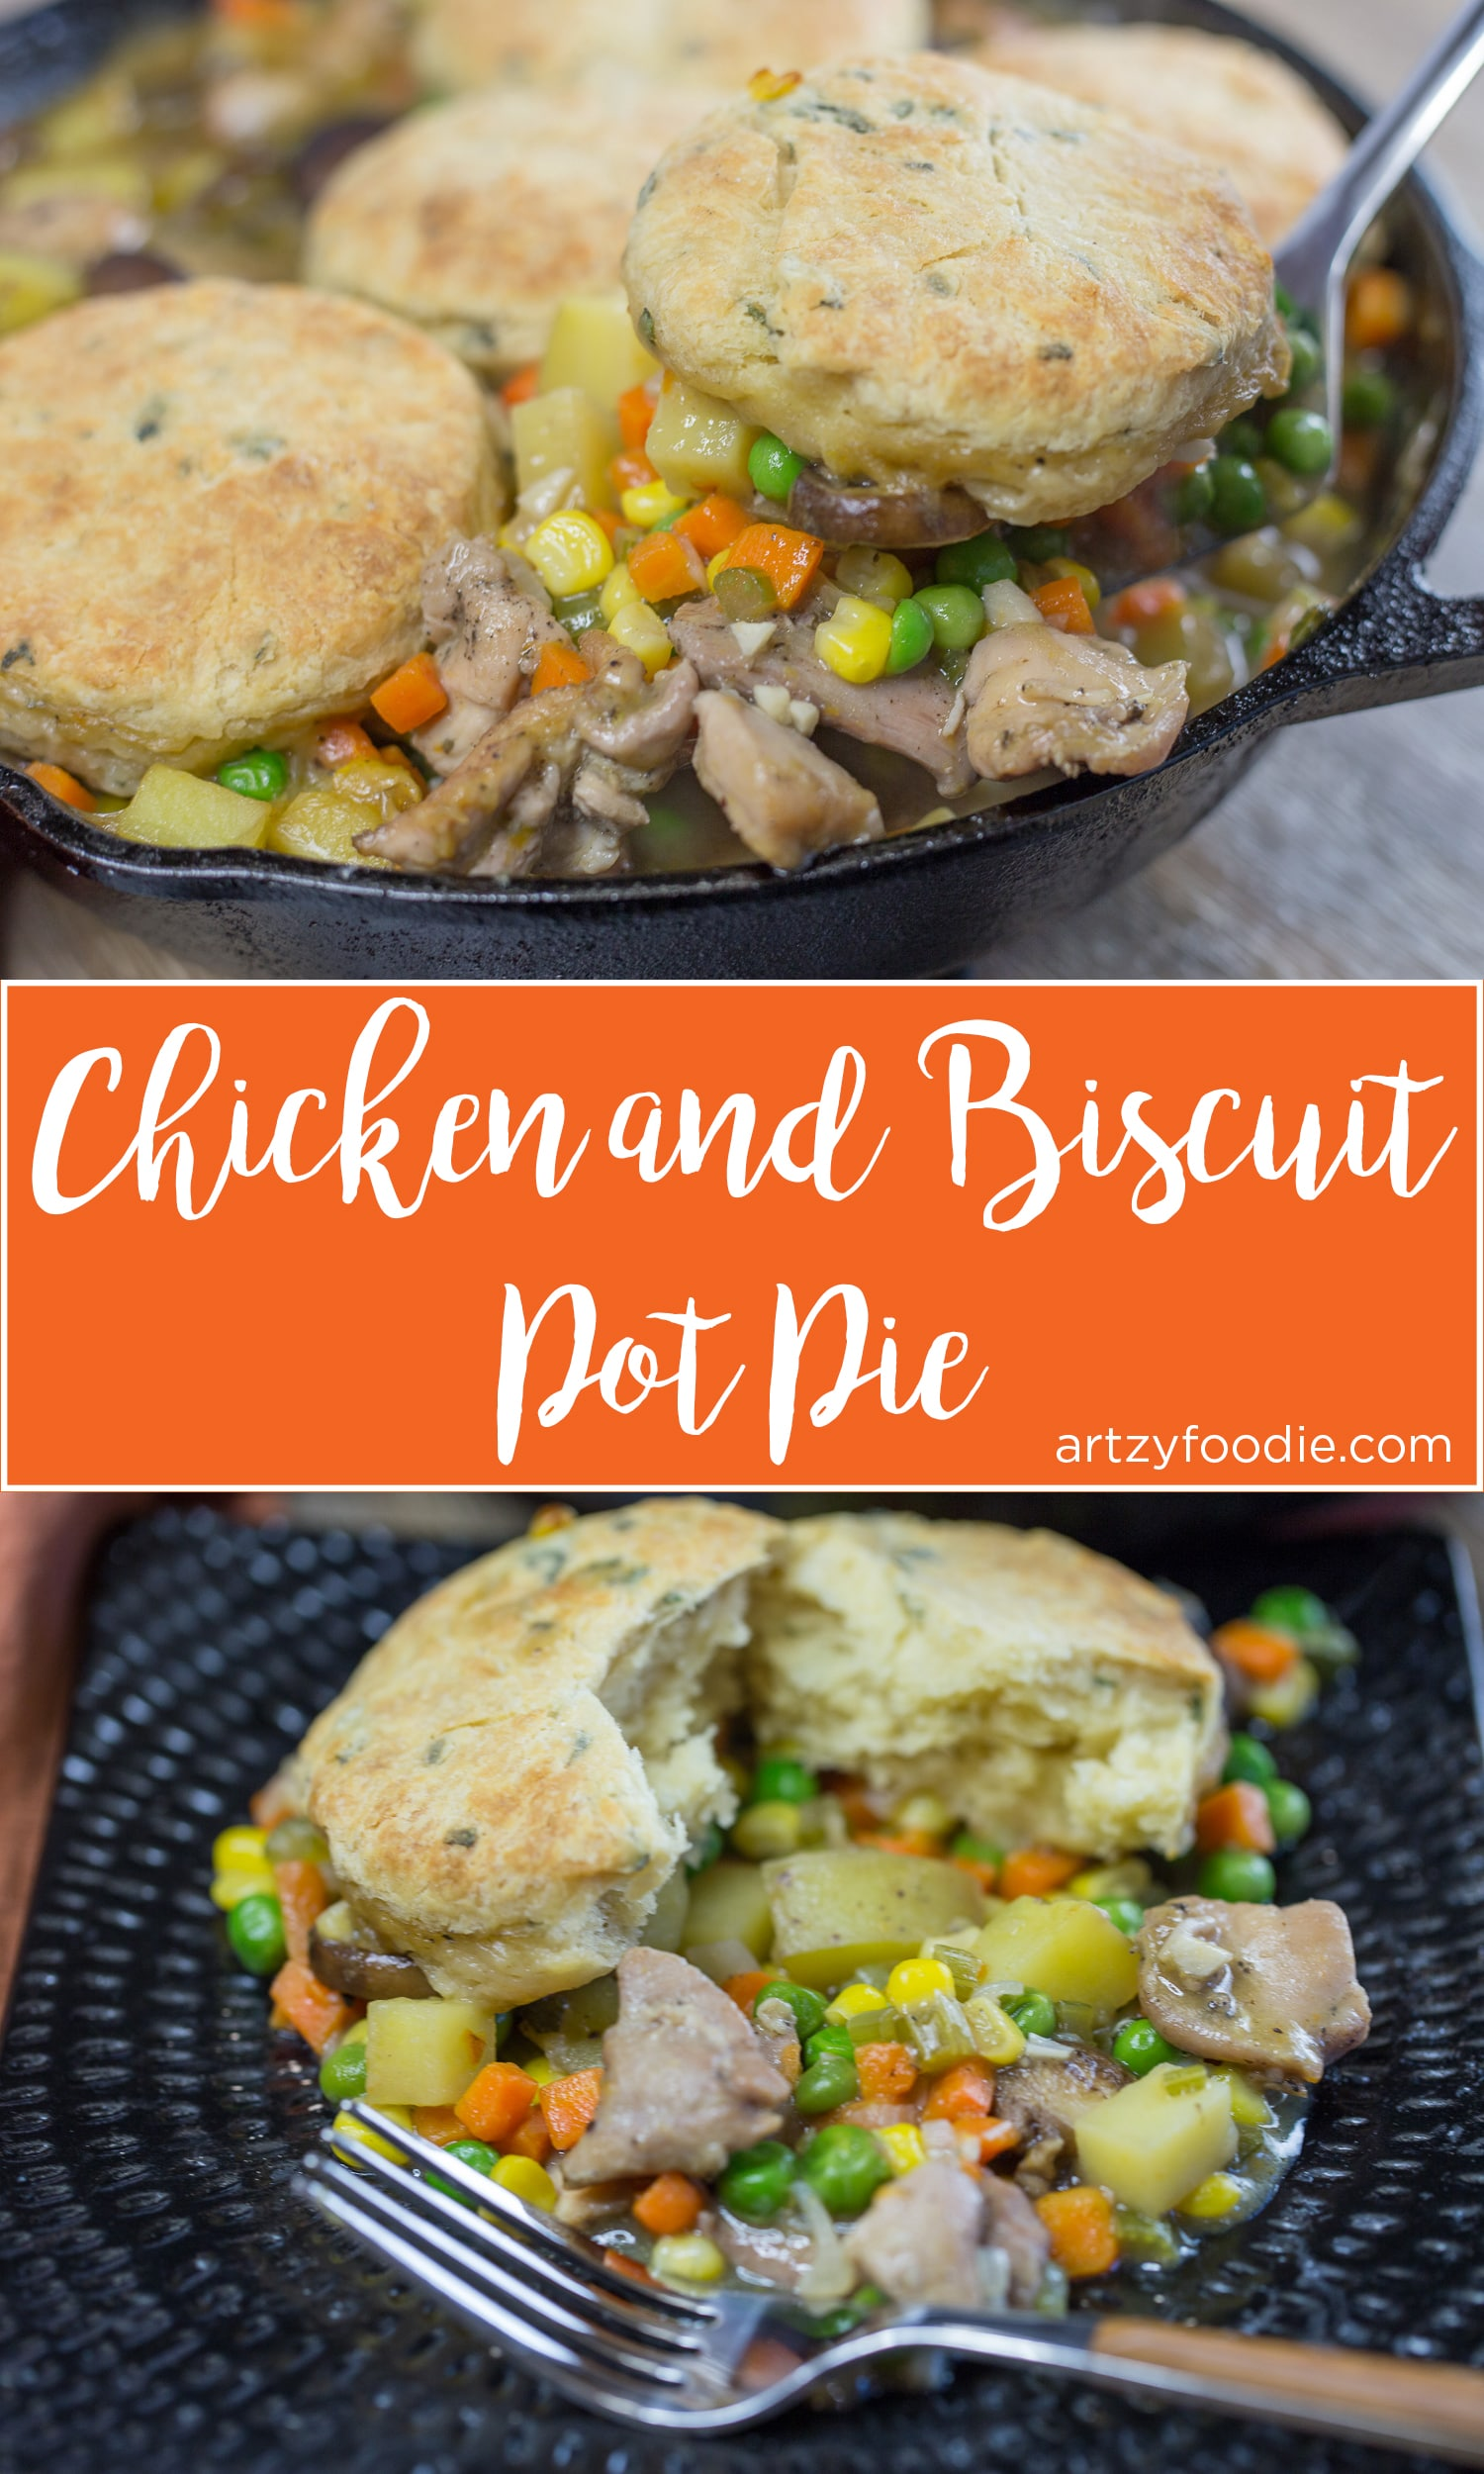 Chicken and biscuit pot pie is a one pot meal consisting of tender chicken and yummy vegetables in a creamy sauce topped with sage biscuits! |artzyfoodie.com|